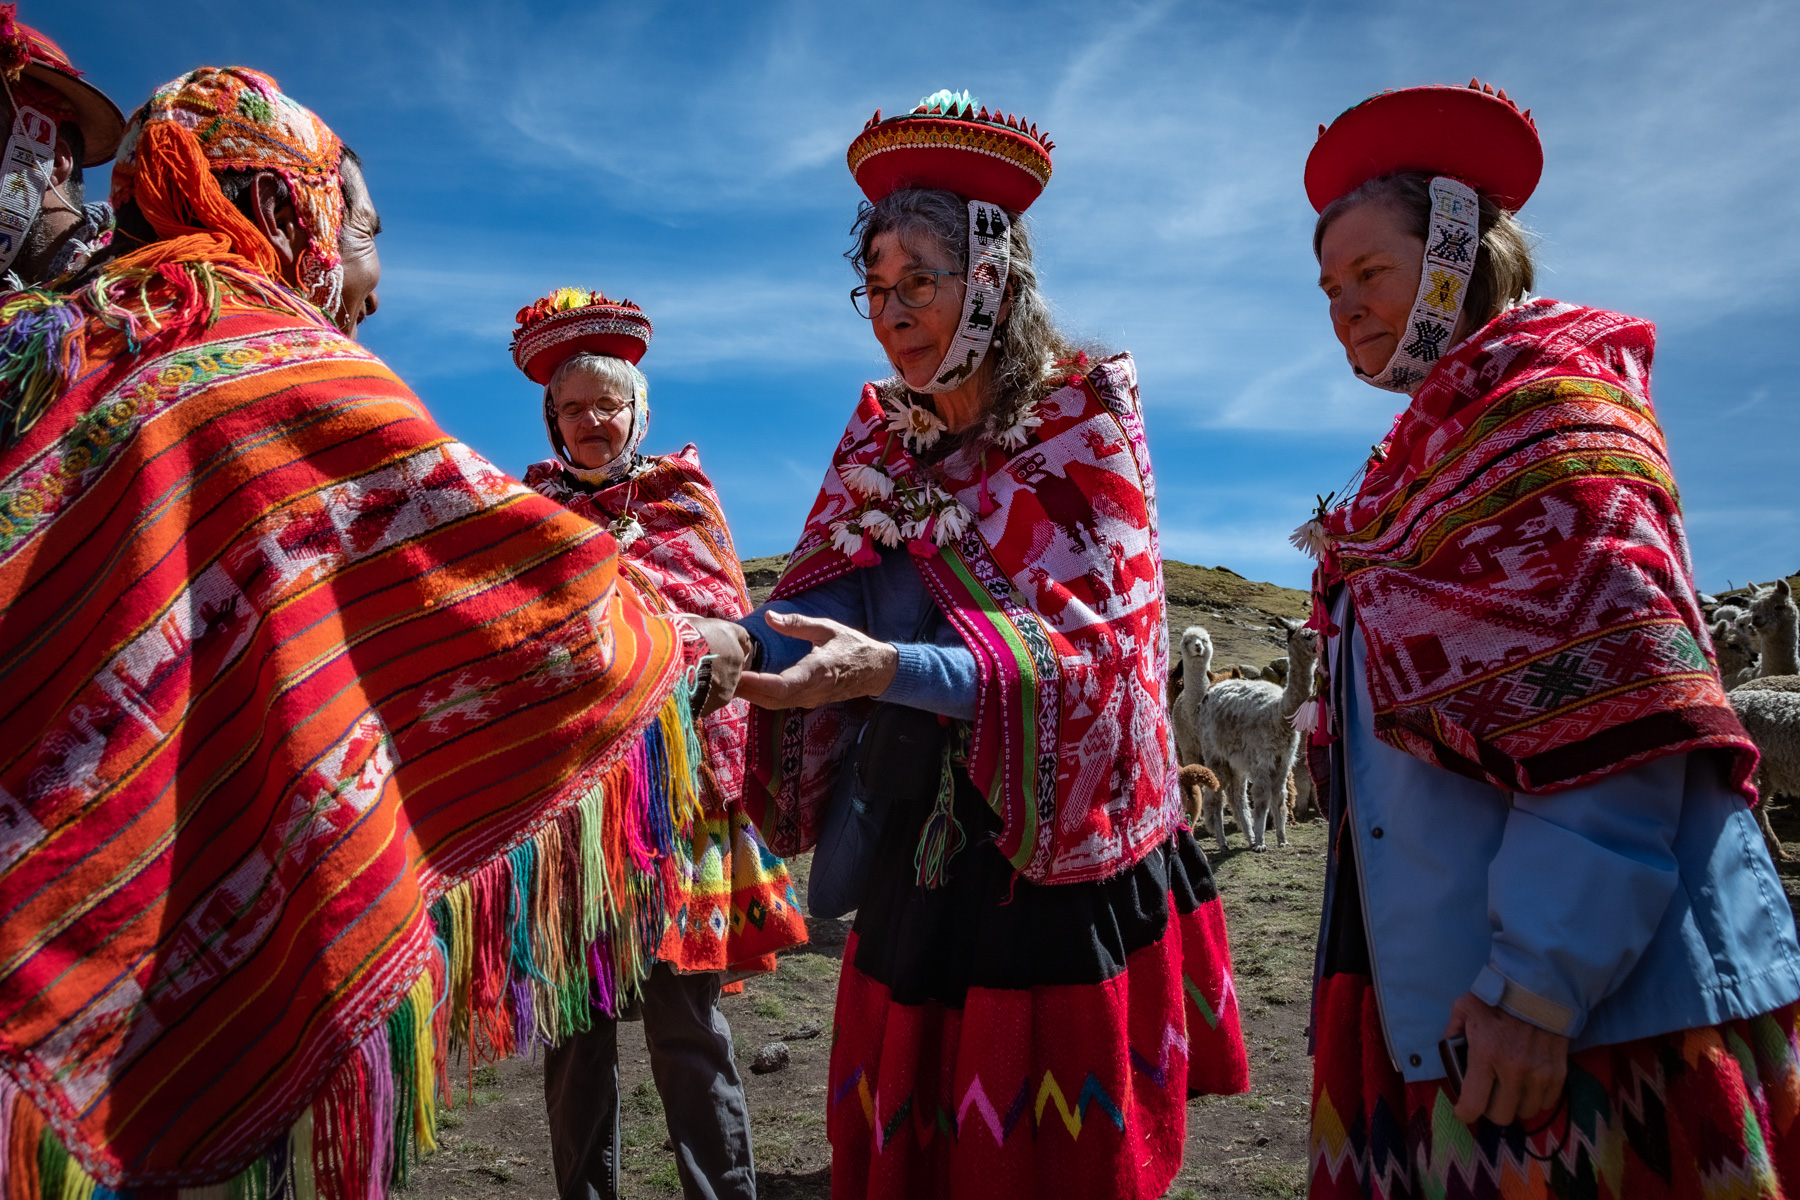 Travellers dressed in traditional Peruvian clothing